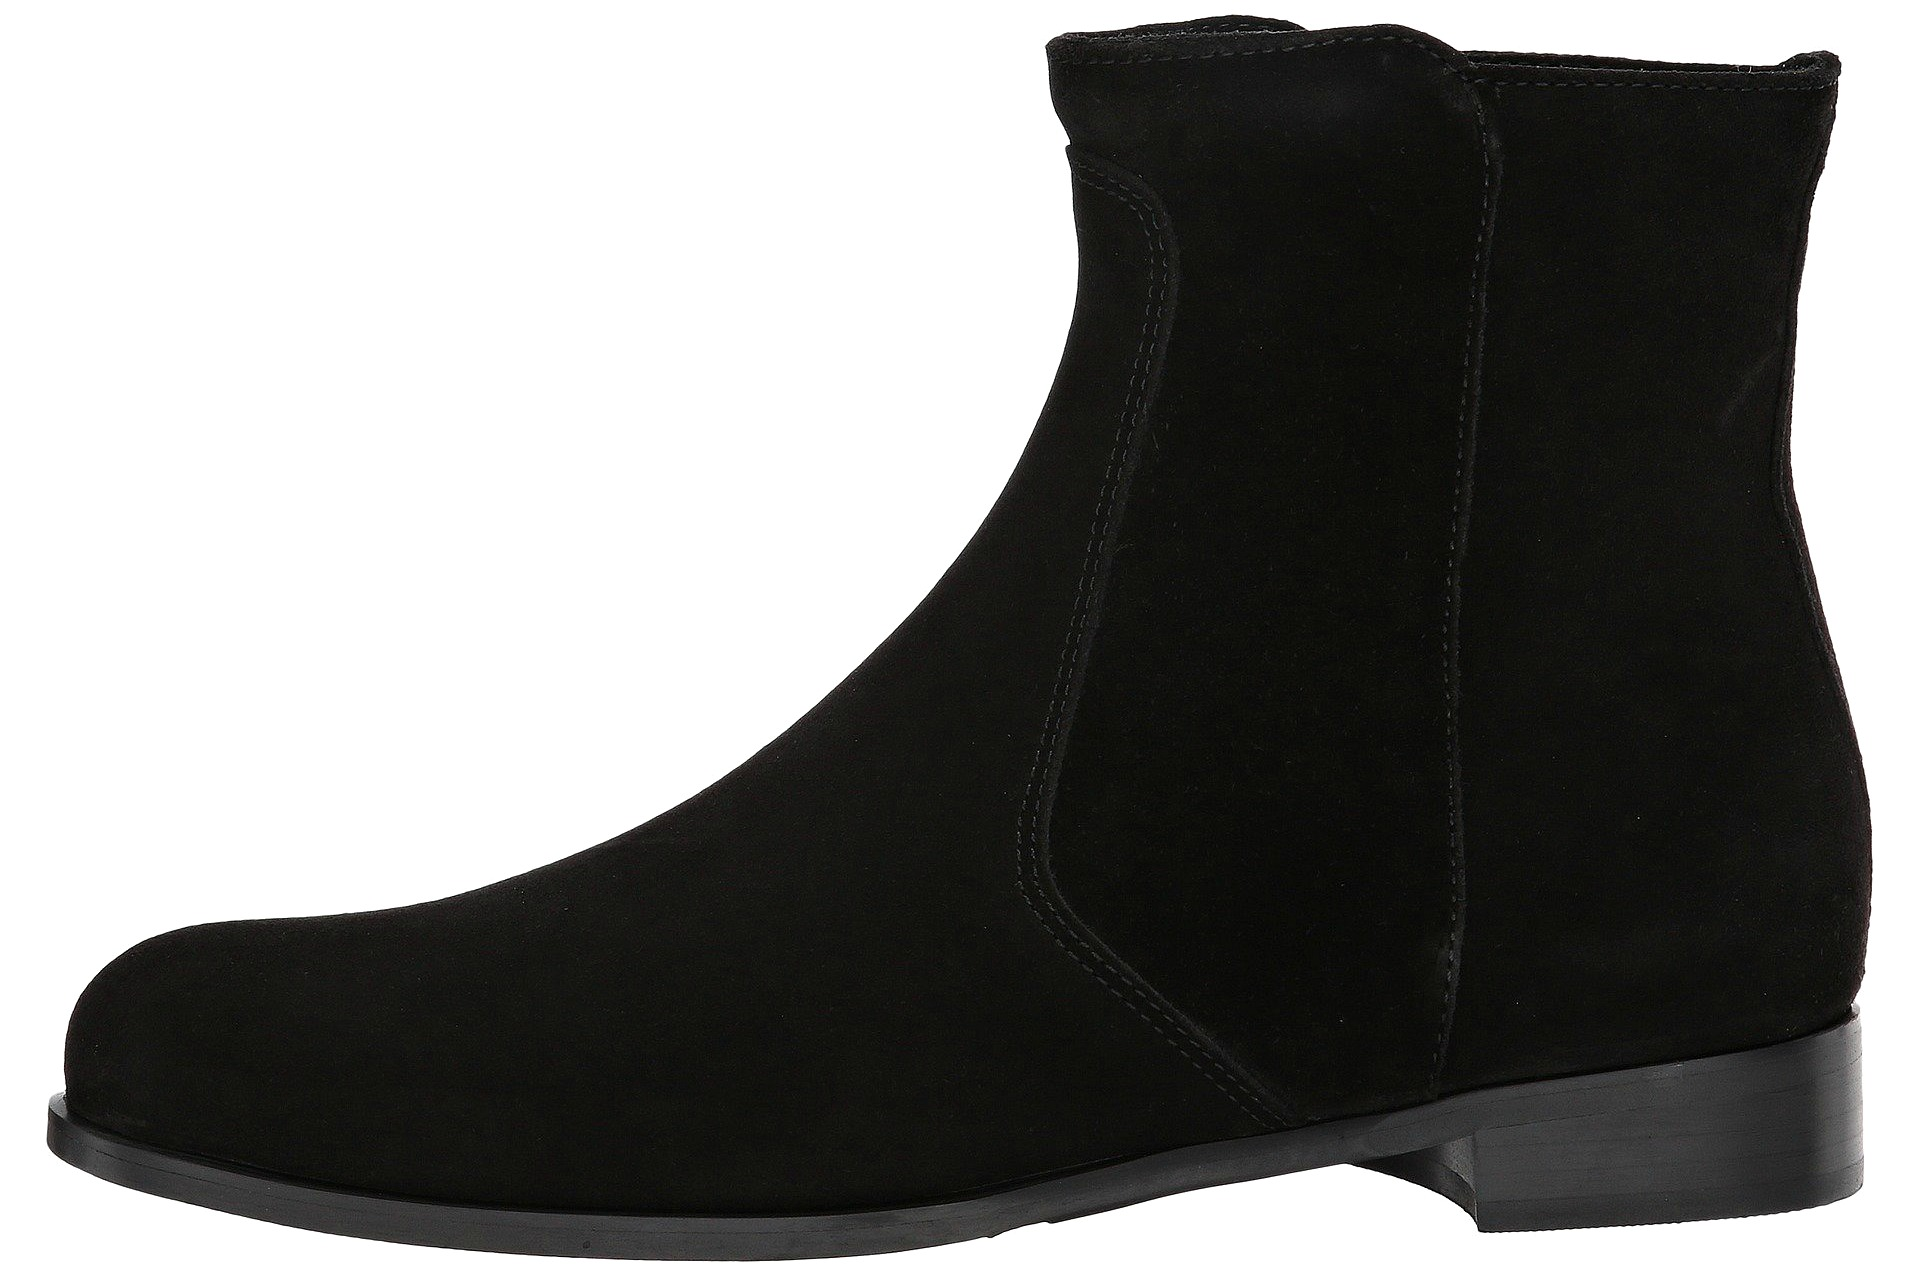 9 Best Black Ankle Boots For Walking